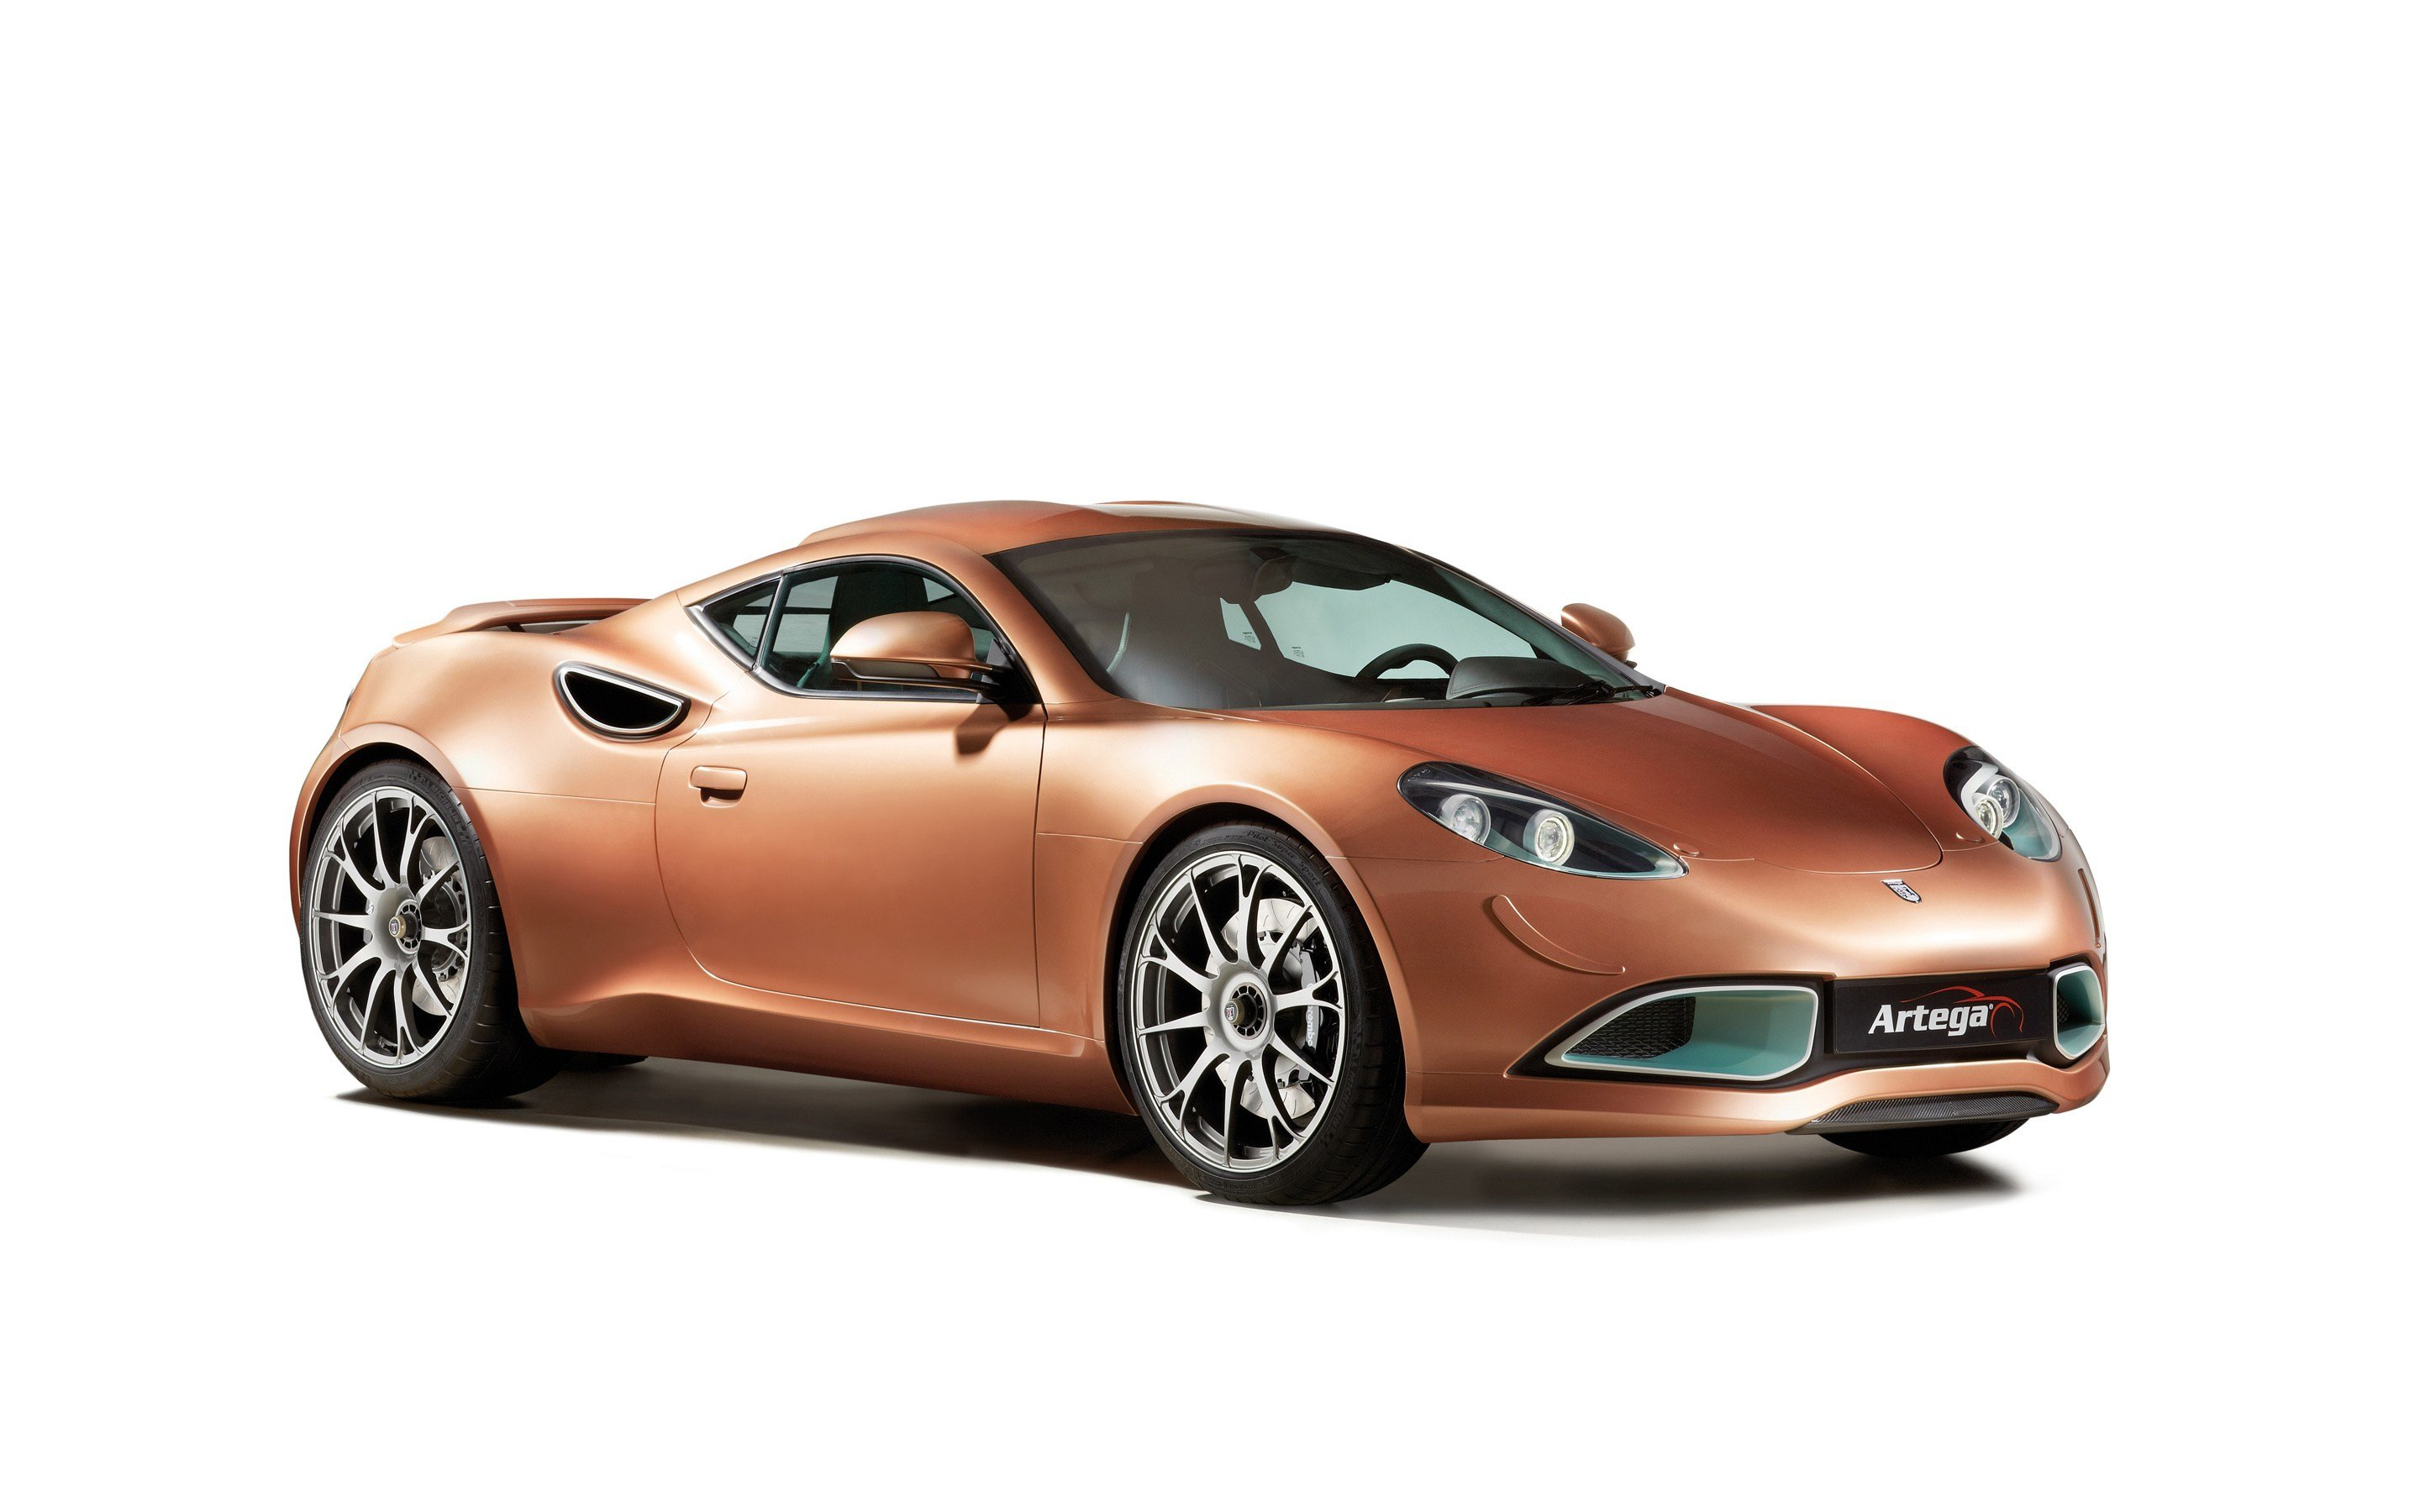 Latest Photos 2015 Scalo Artega Brown Automobile White Background Free Download